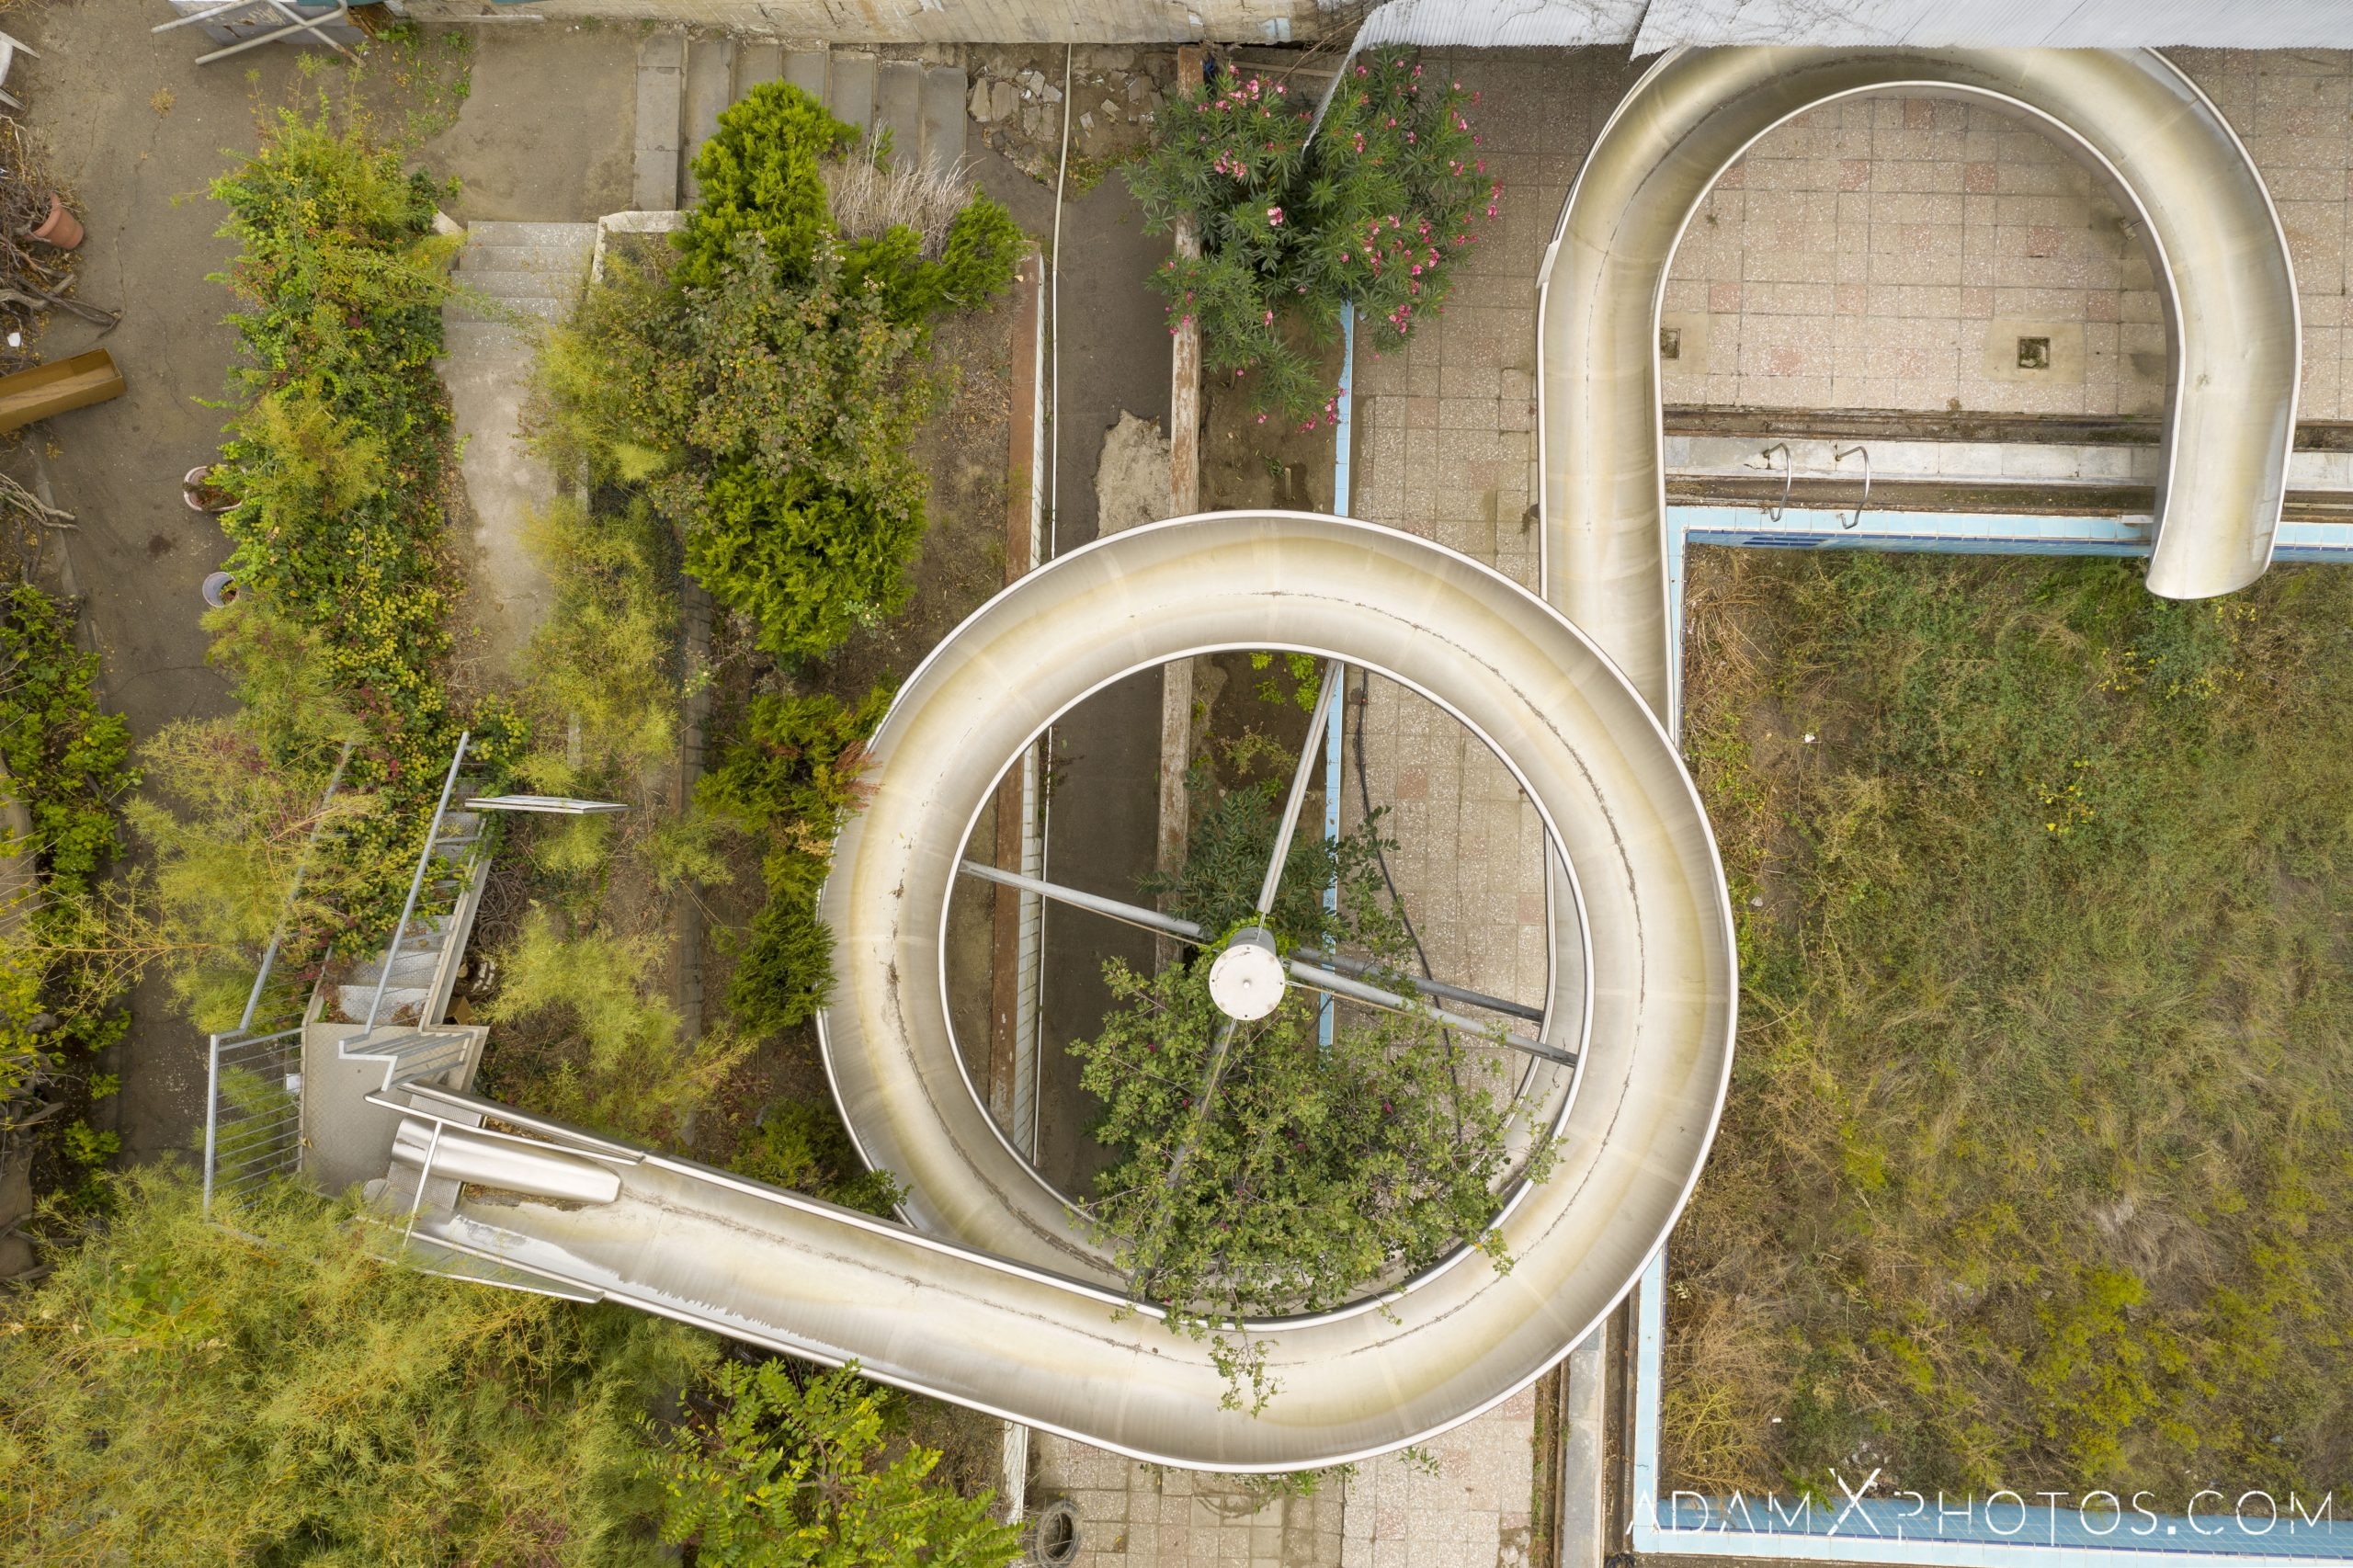 Water slide drone from above aerial Laguna Vere swimming pool Tbilisi Georgia Soviet era Adam X AdamXPhotos Urbex Urban Exploration 2018 Abandoned Access History decay ruins lost forgotten derelict location creepy haunting eerie security